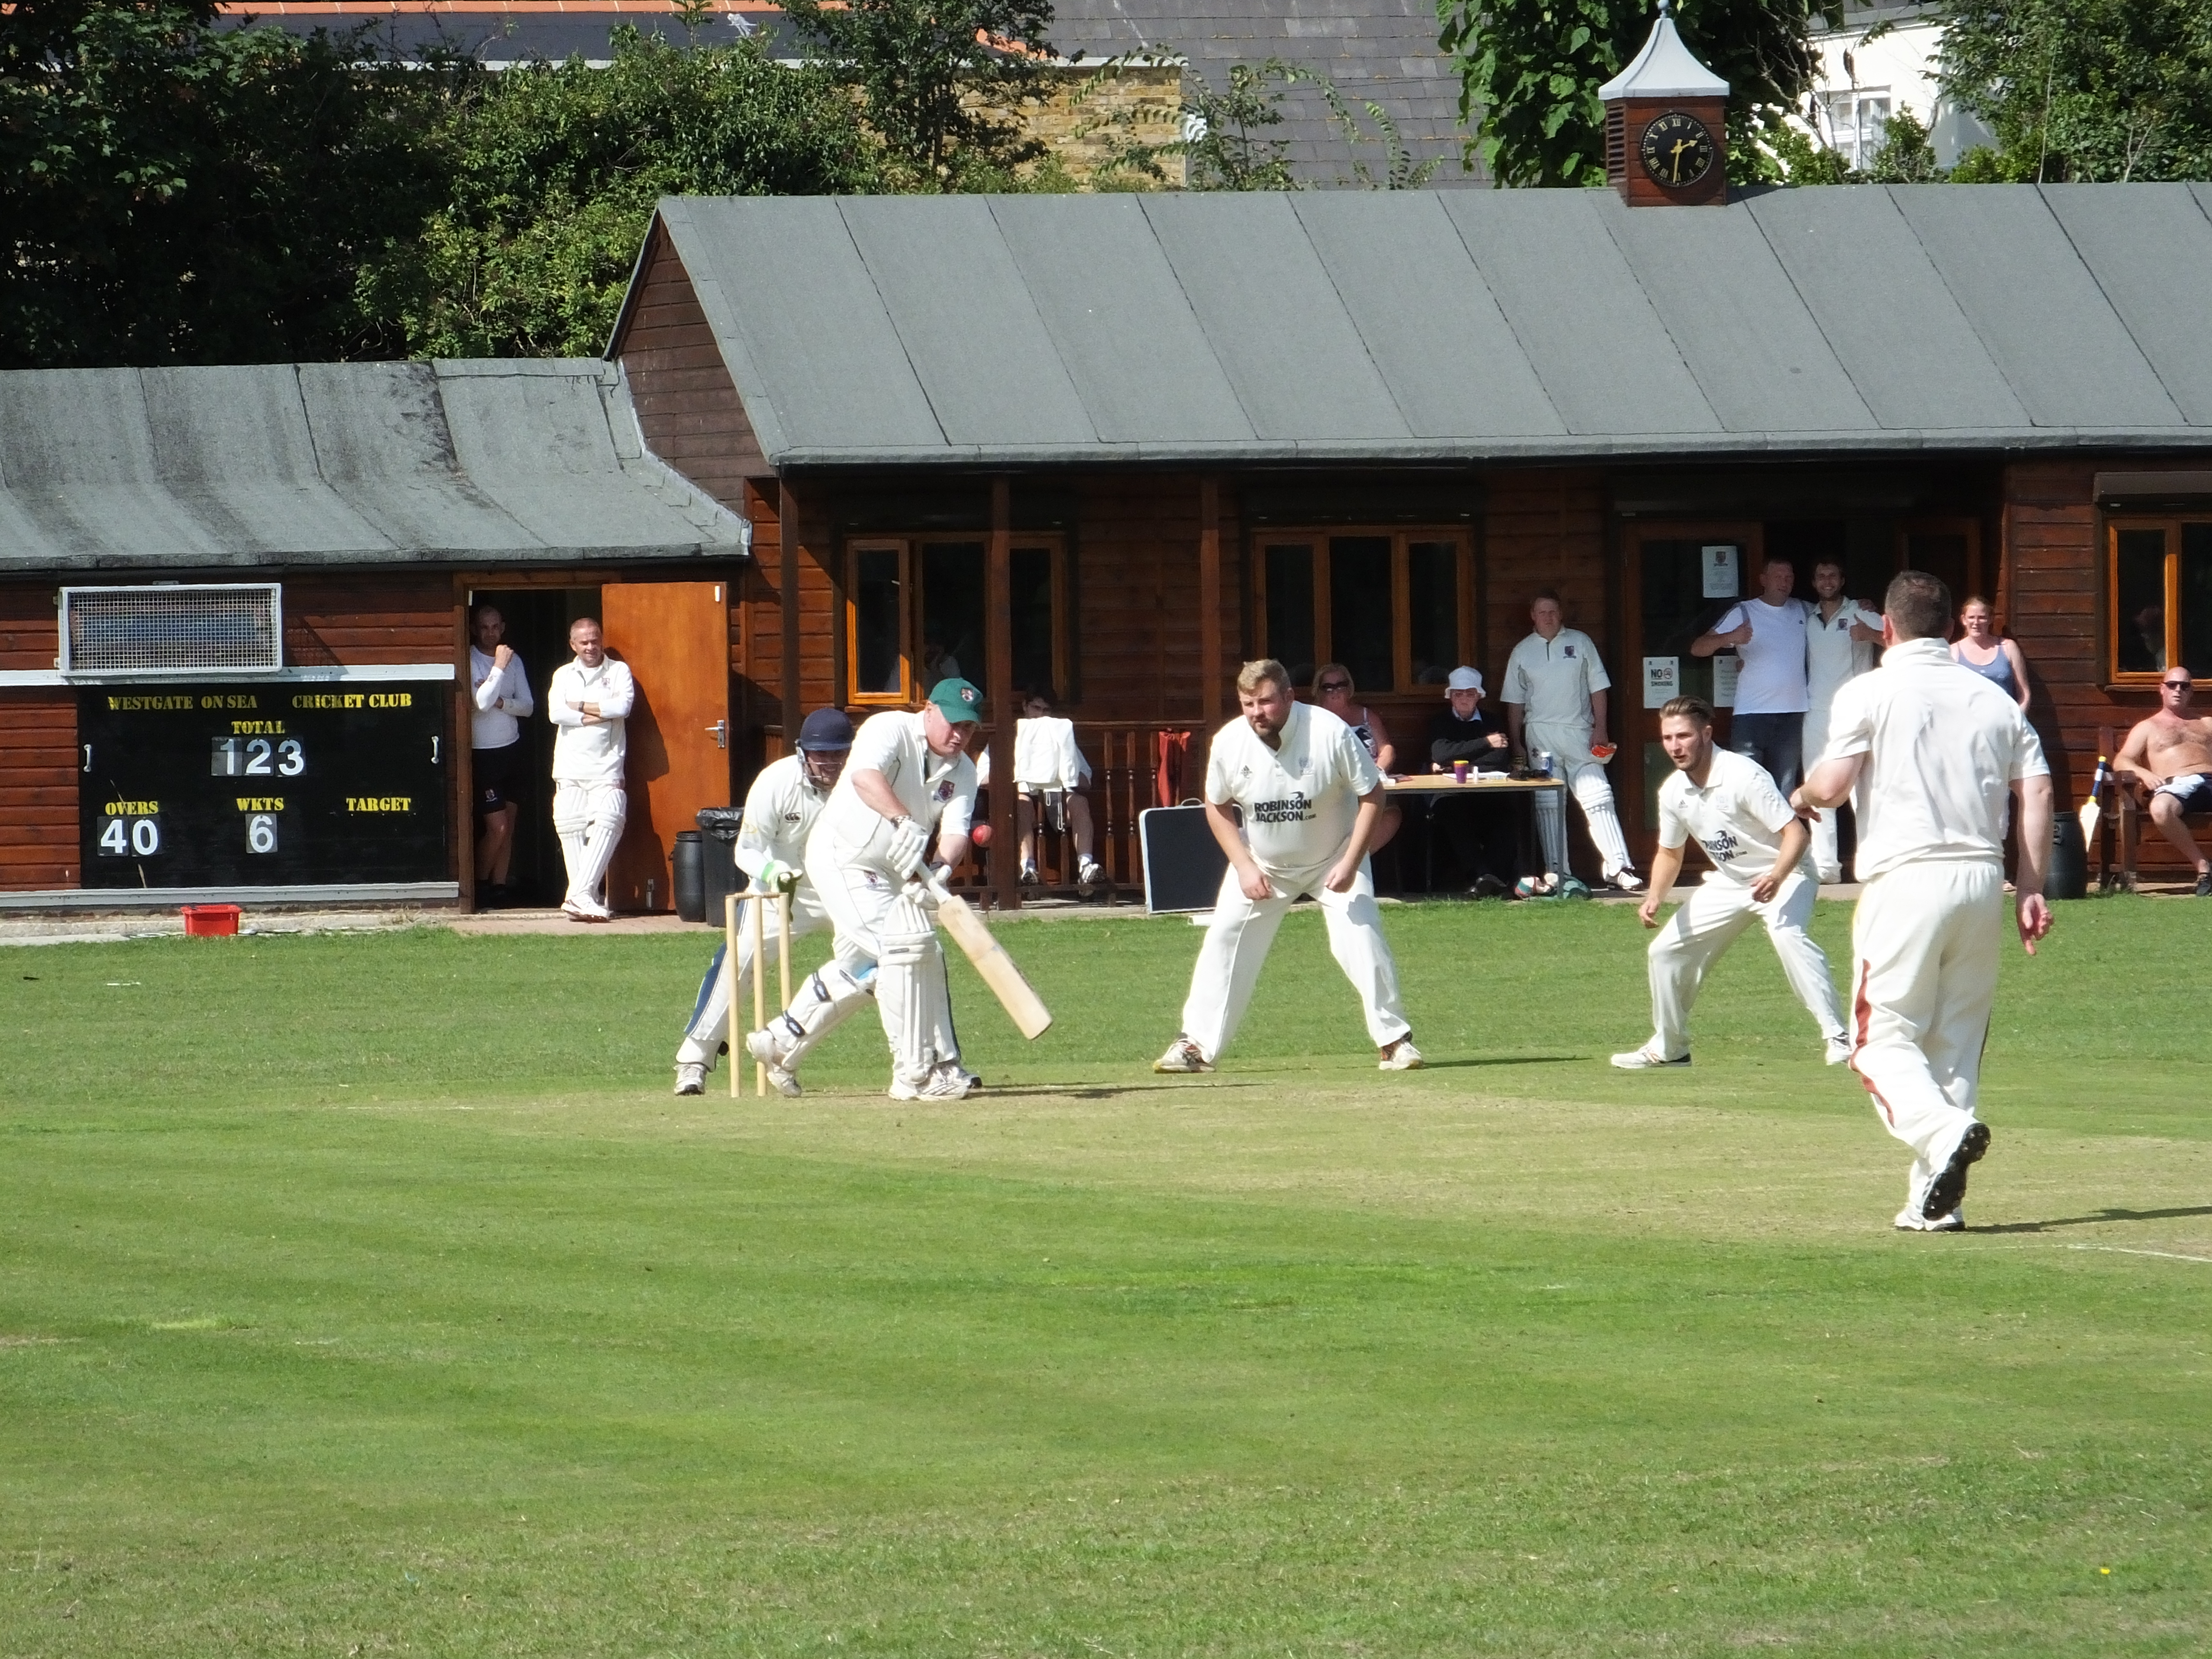 Westgate-on-Sea Cricket Club - The umpire strikes back! Background